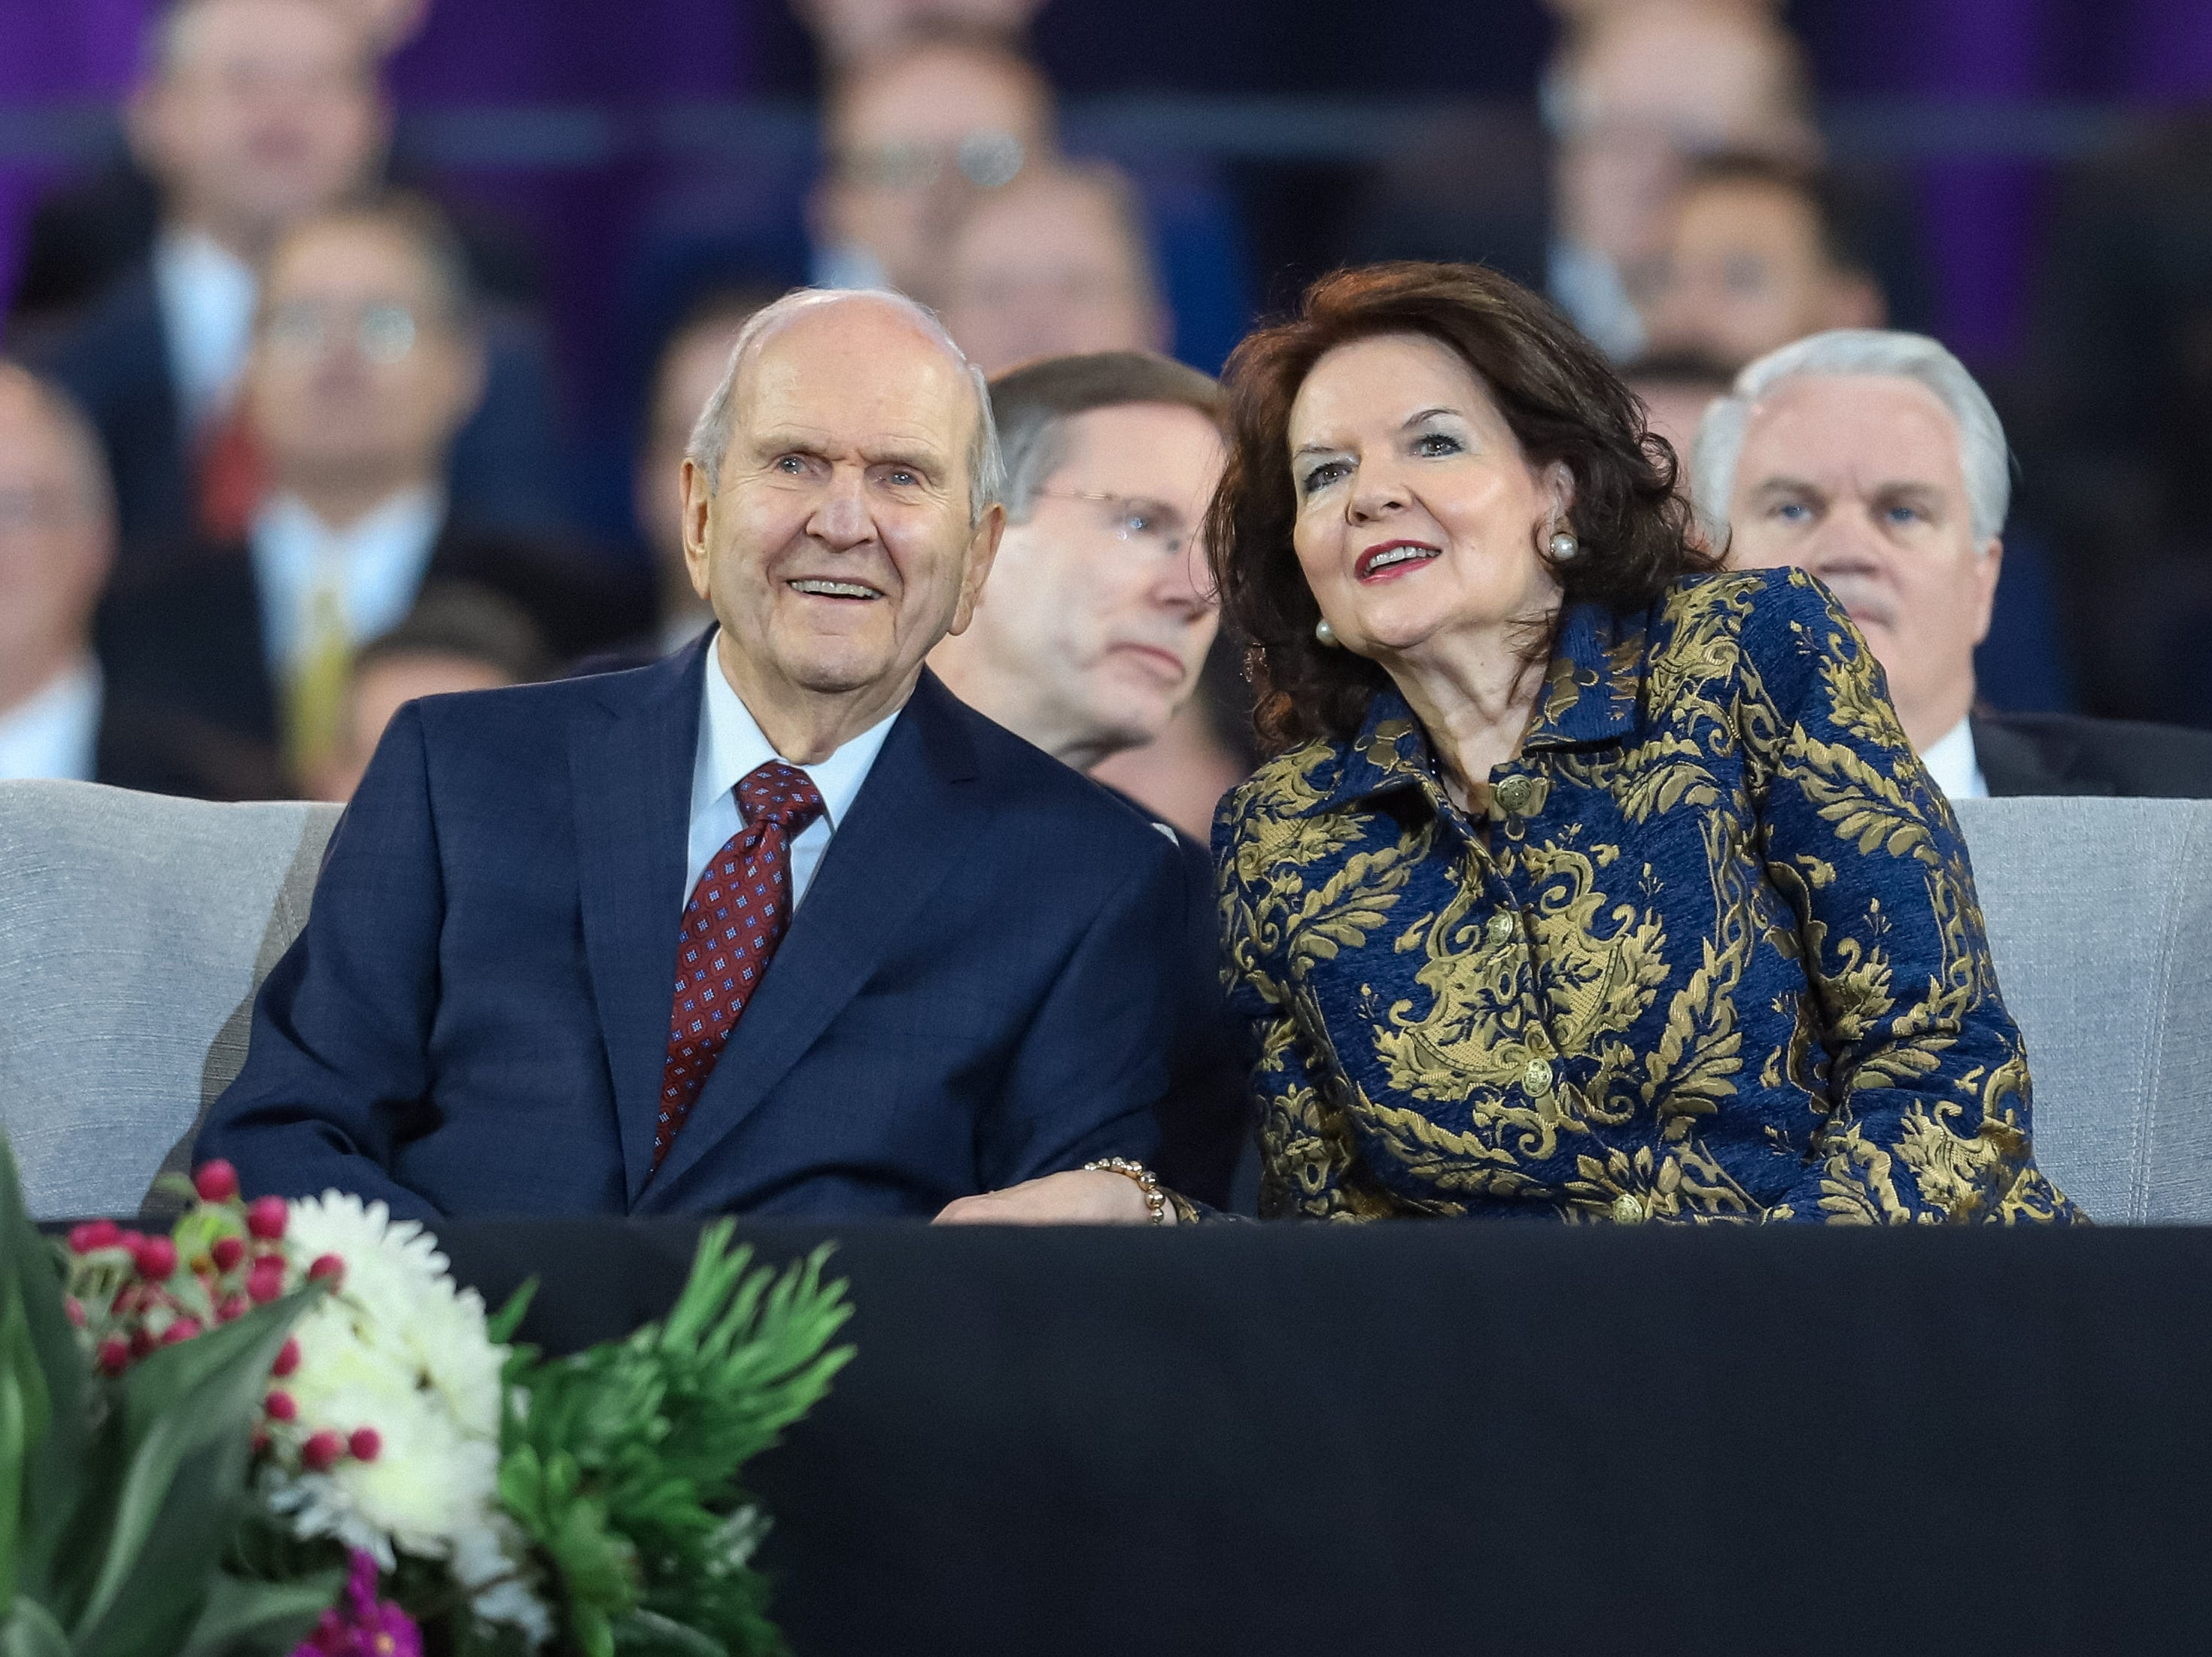 President Russell M. Nelson, the prophet of the Church of Jesus Christ of Latter-day Saints, looks out at nearly 70,000 people at State Farm Stadium in Glendale, Arizona on Sunday, Feb. 10, 2019.